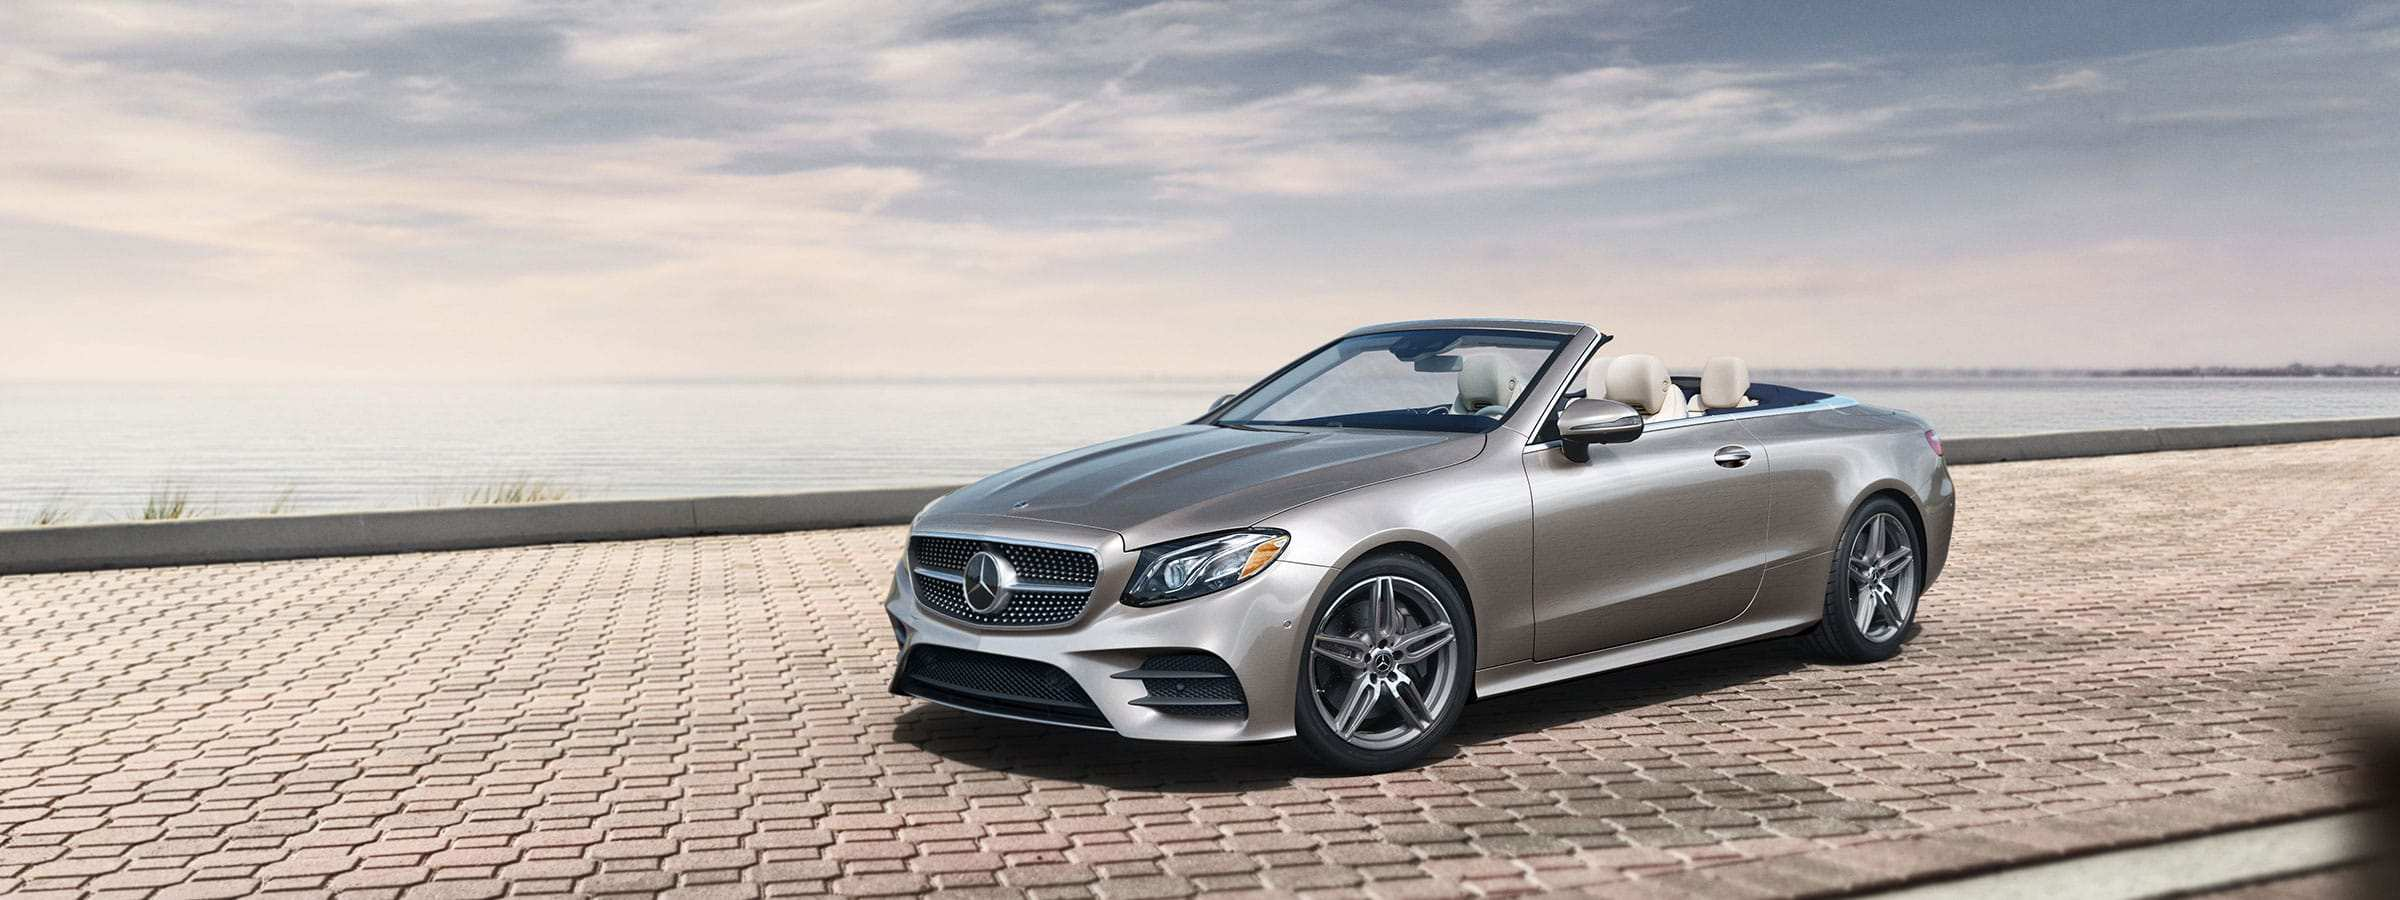 91 The Best Mercedes 2019 E Class Price Style